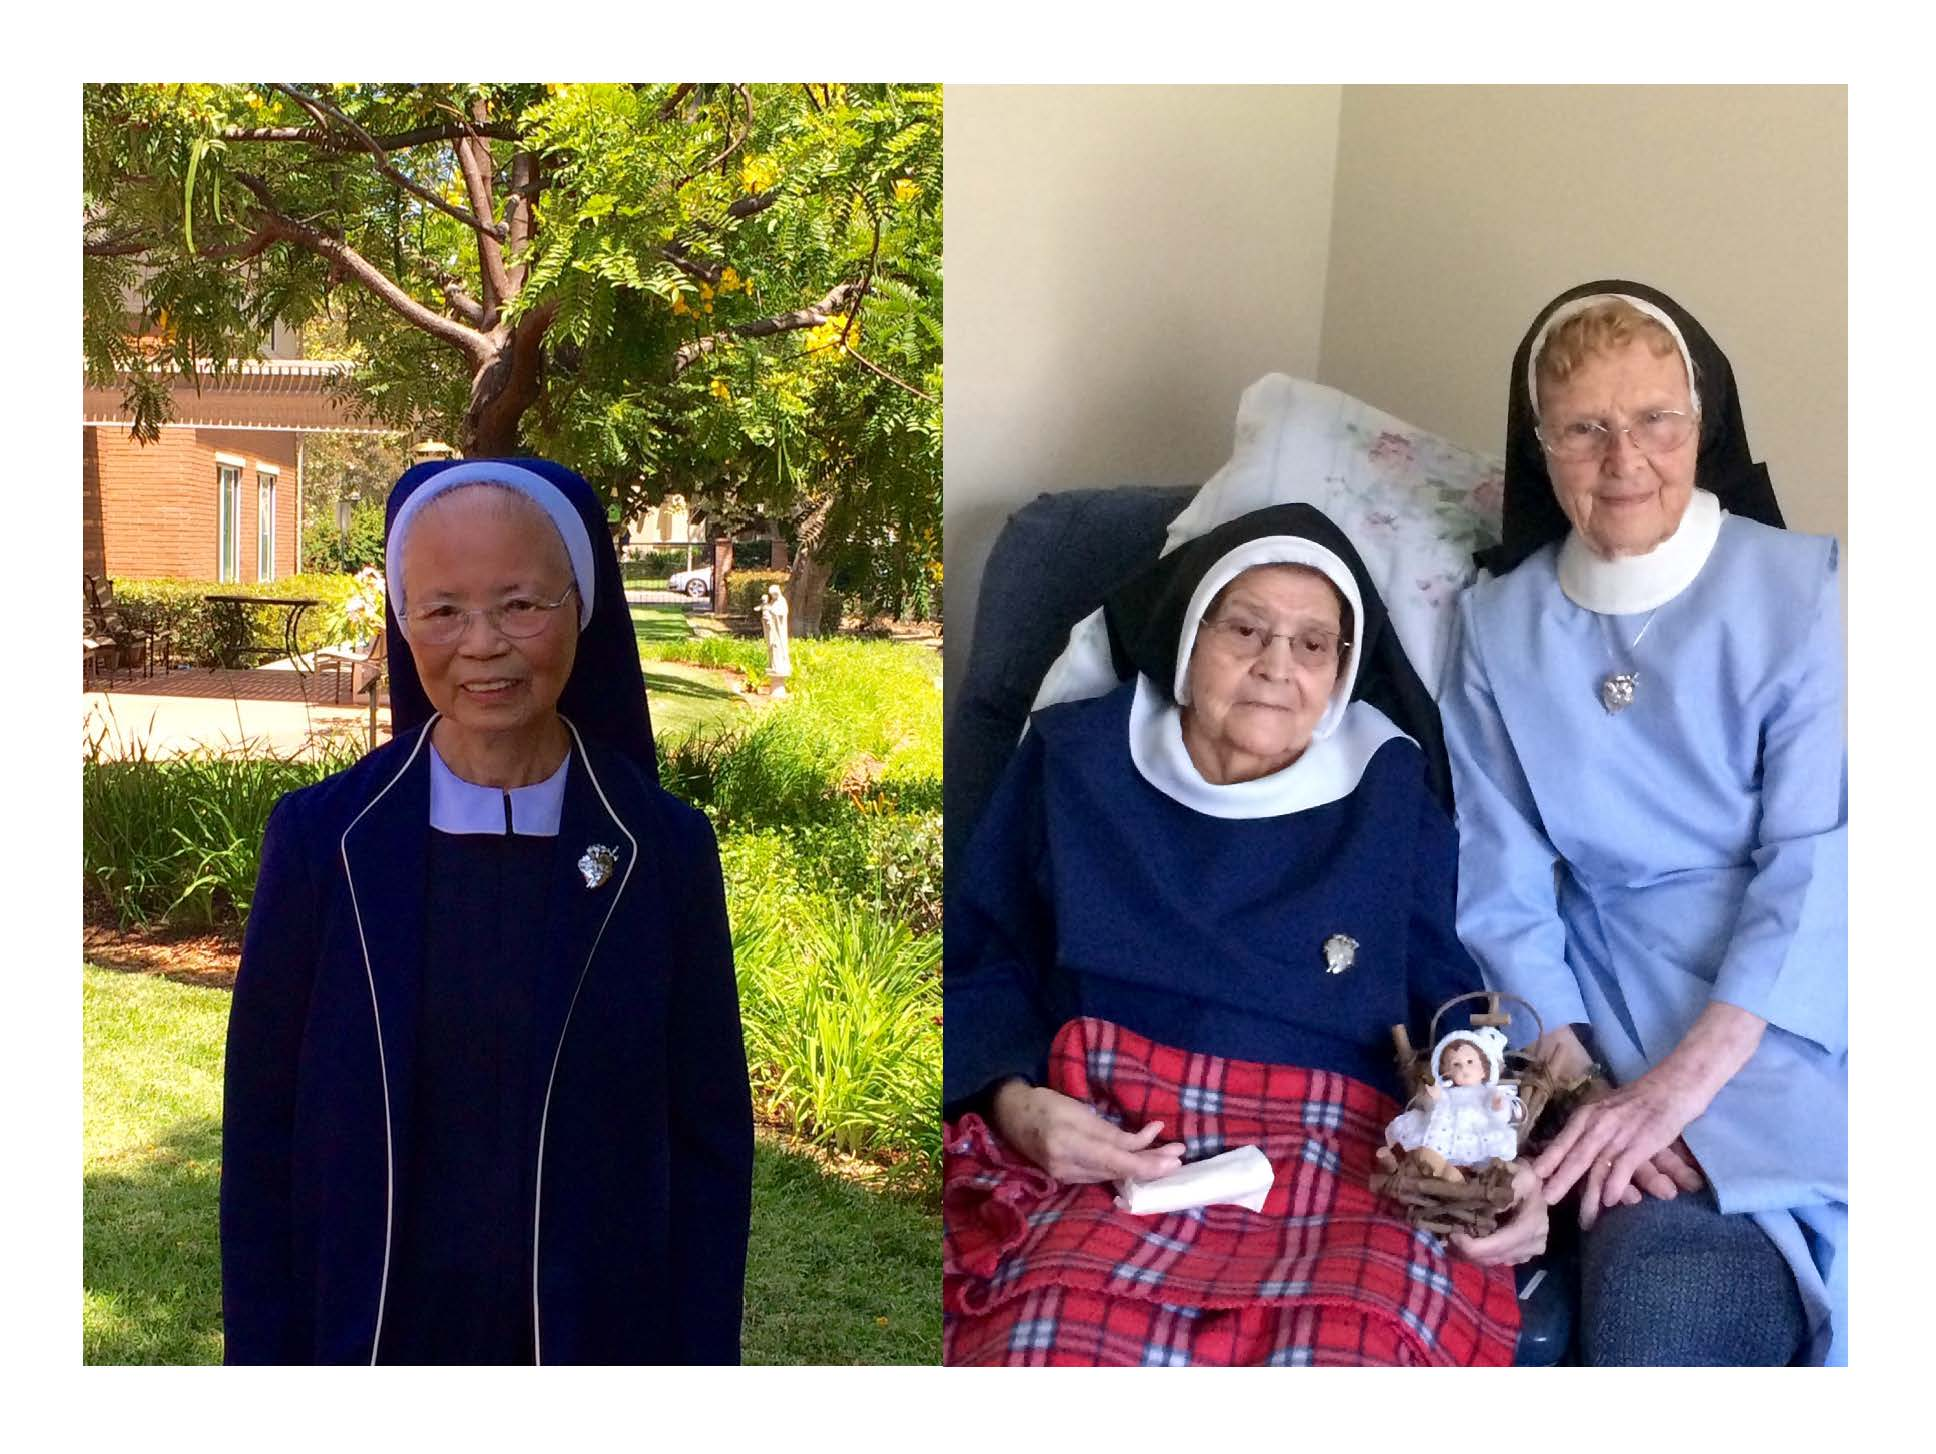 The majority of the Sisters of the Immaculate Heart of Mary did not support the transaction with Dana Hollister for the Waverly property. (Photo credit: Archdiocese of Los Angeles)